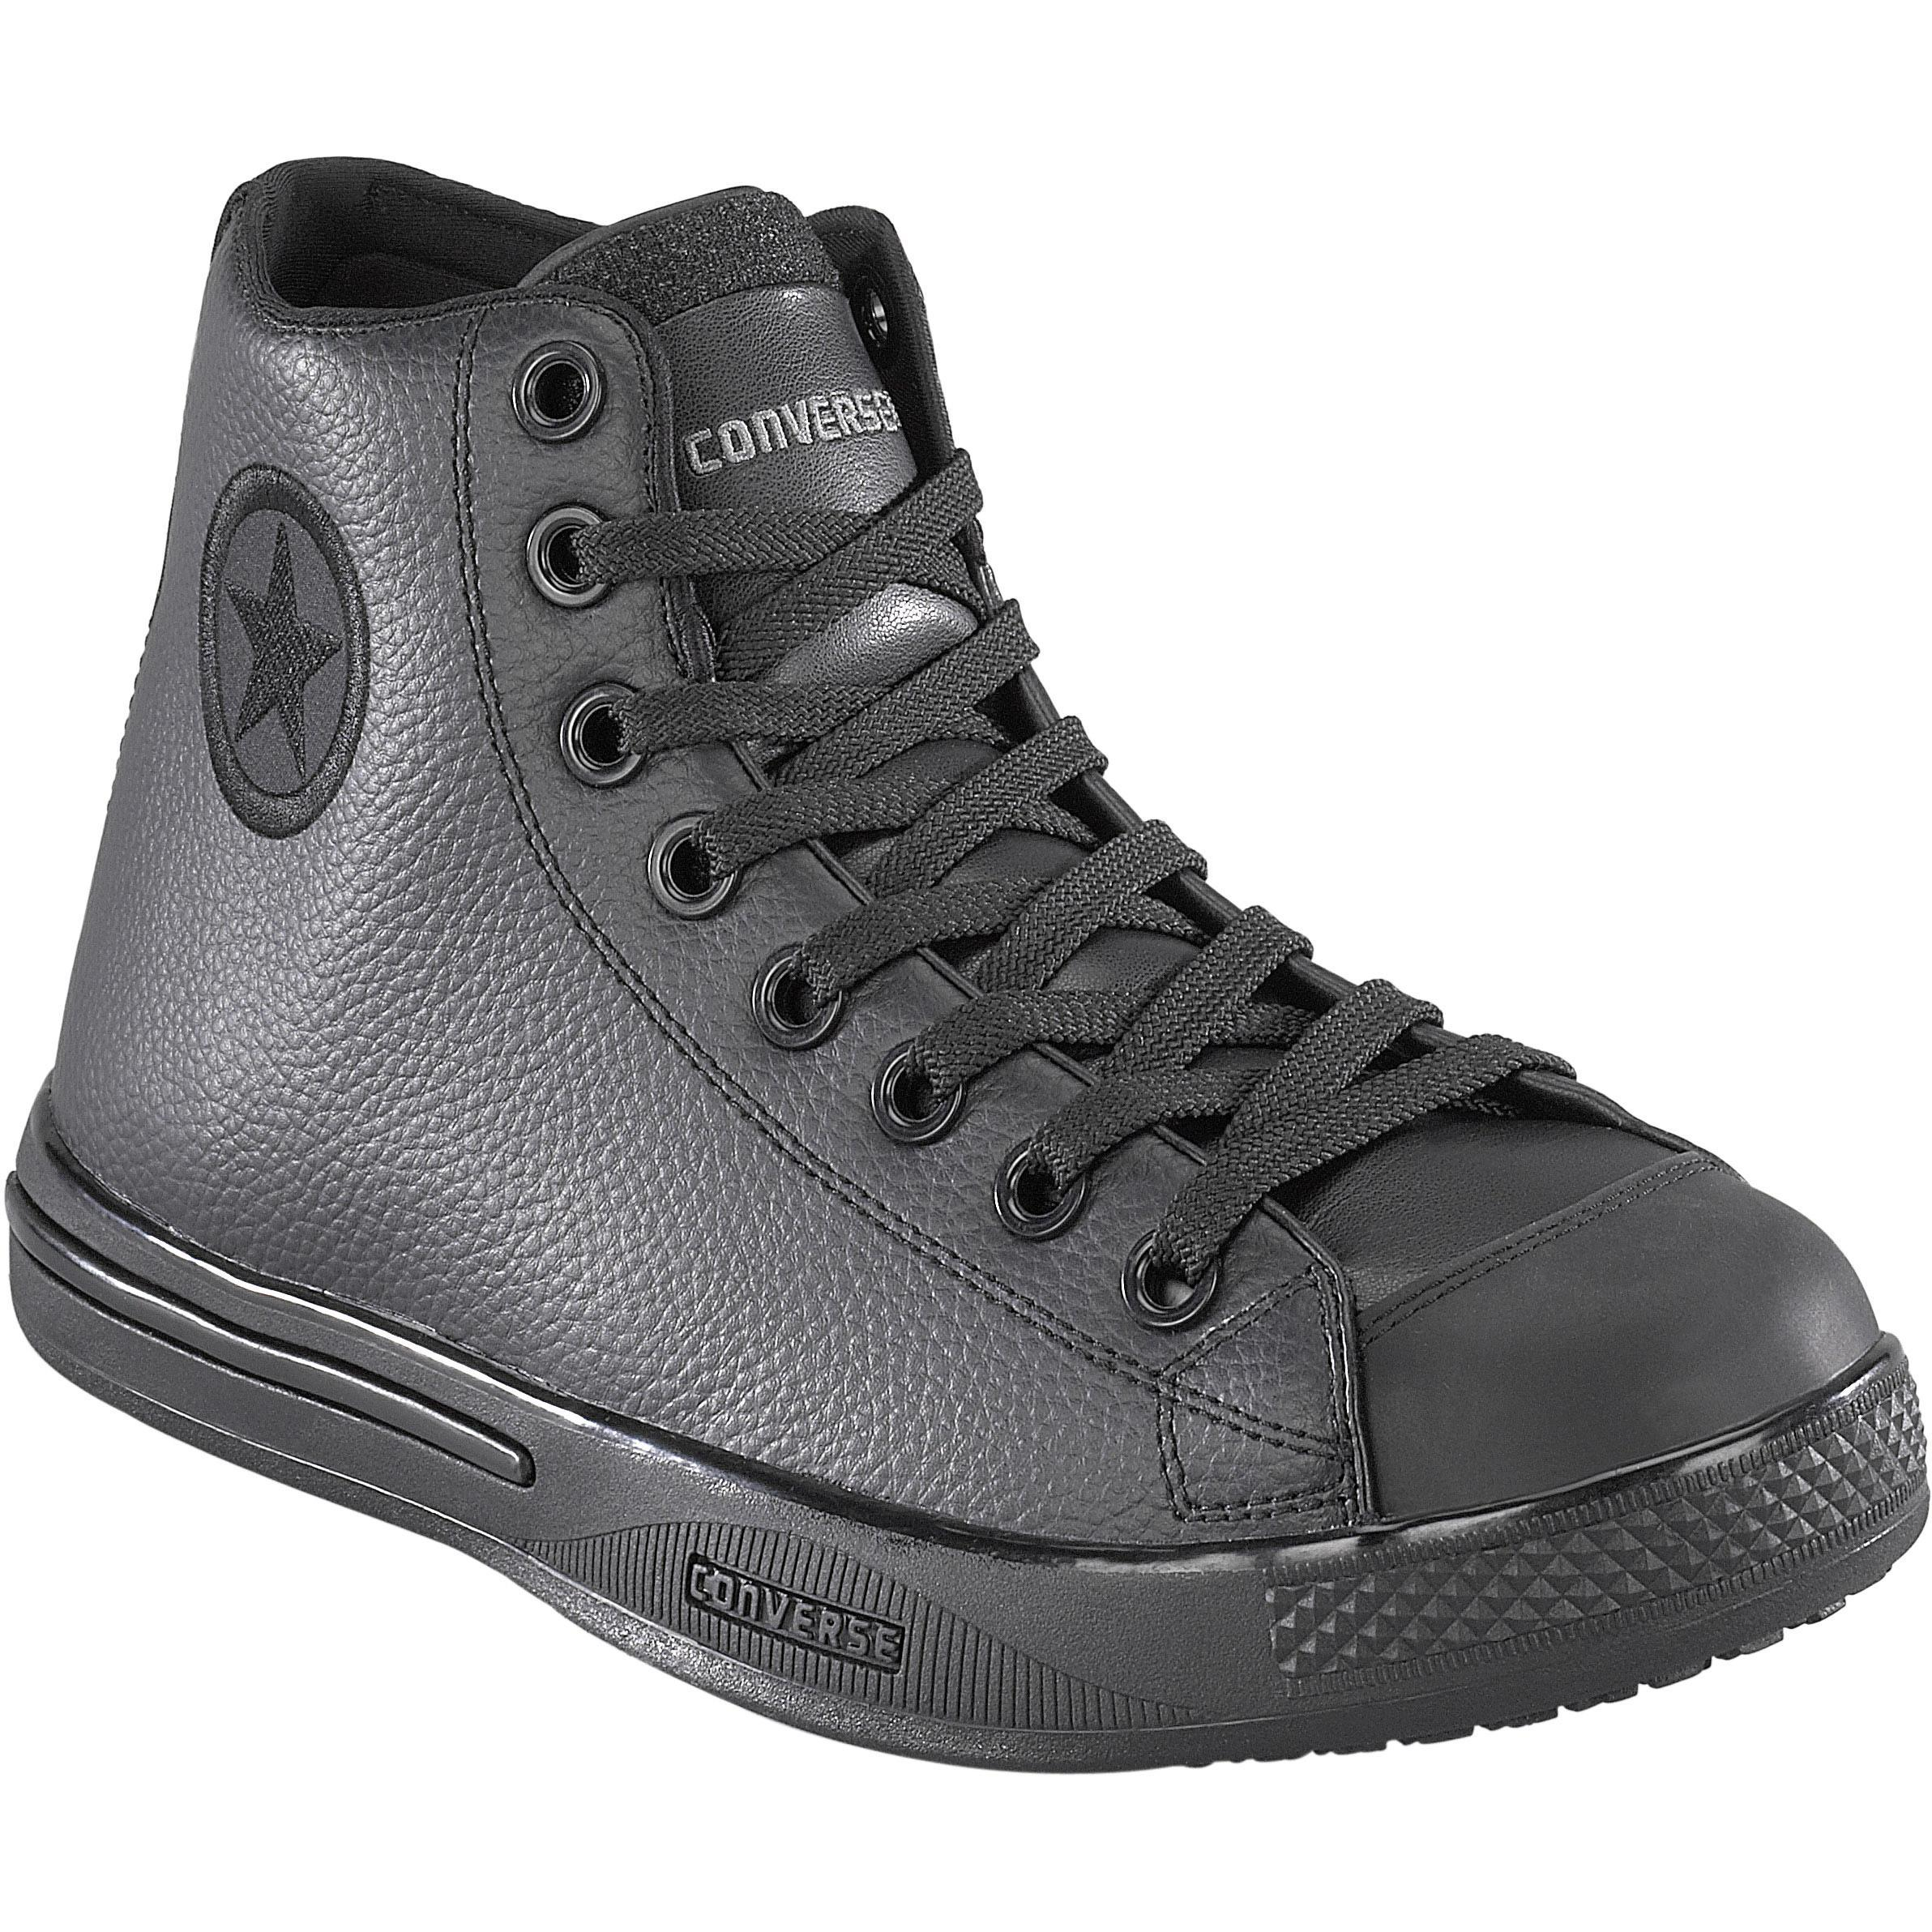 Converse Slip Resistant Shoes